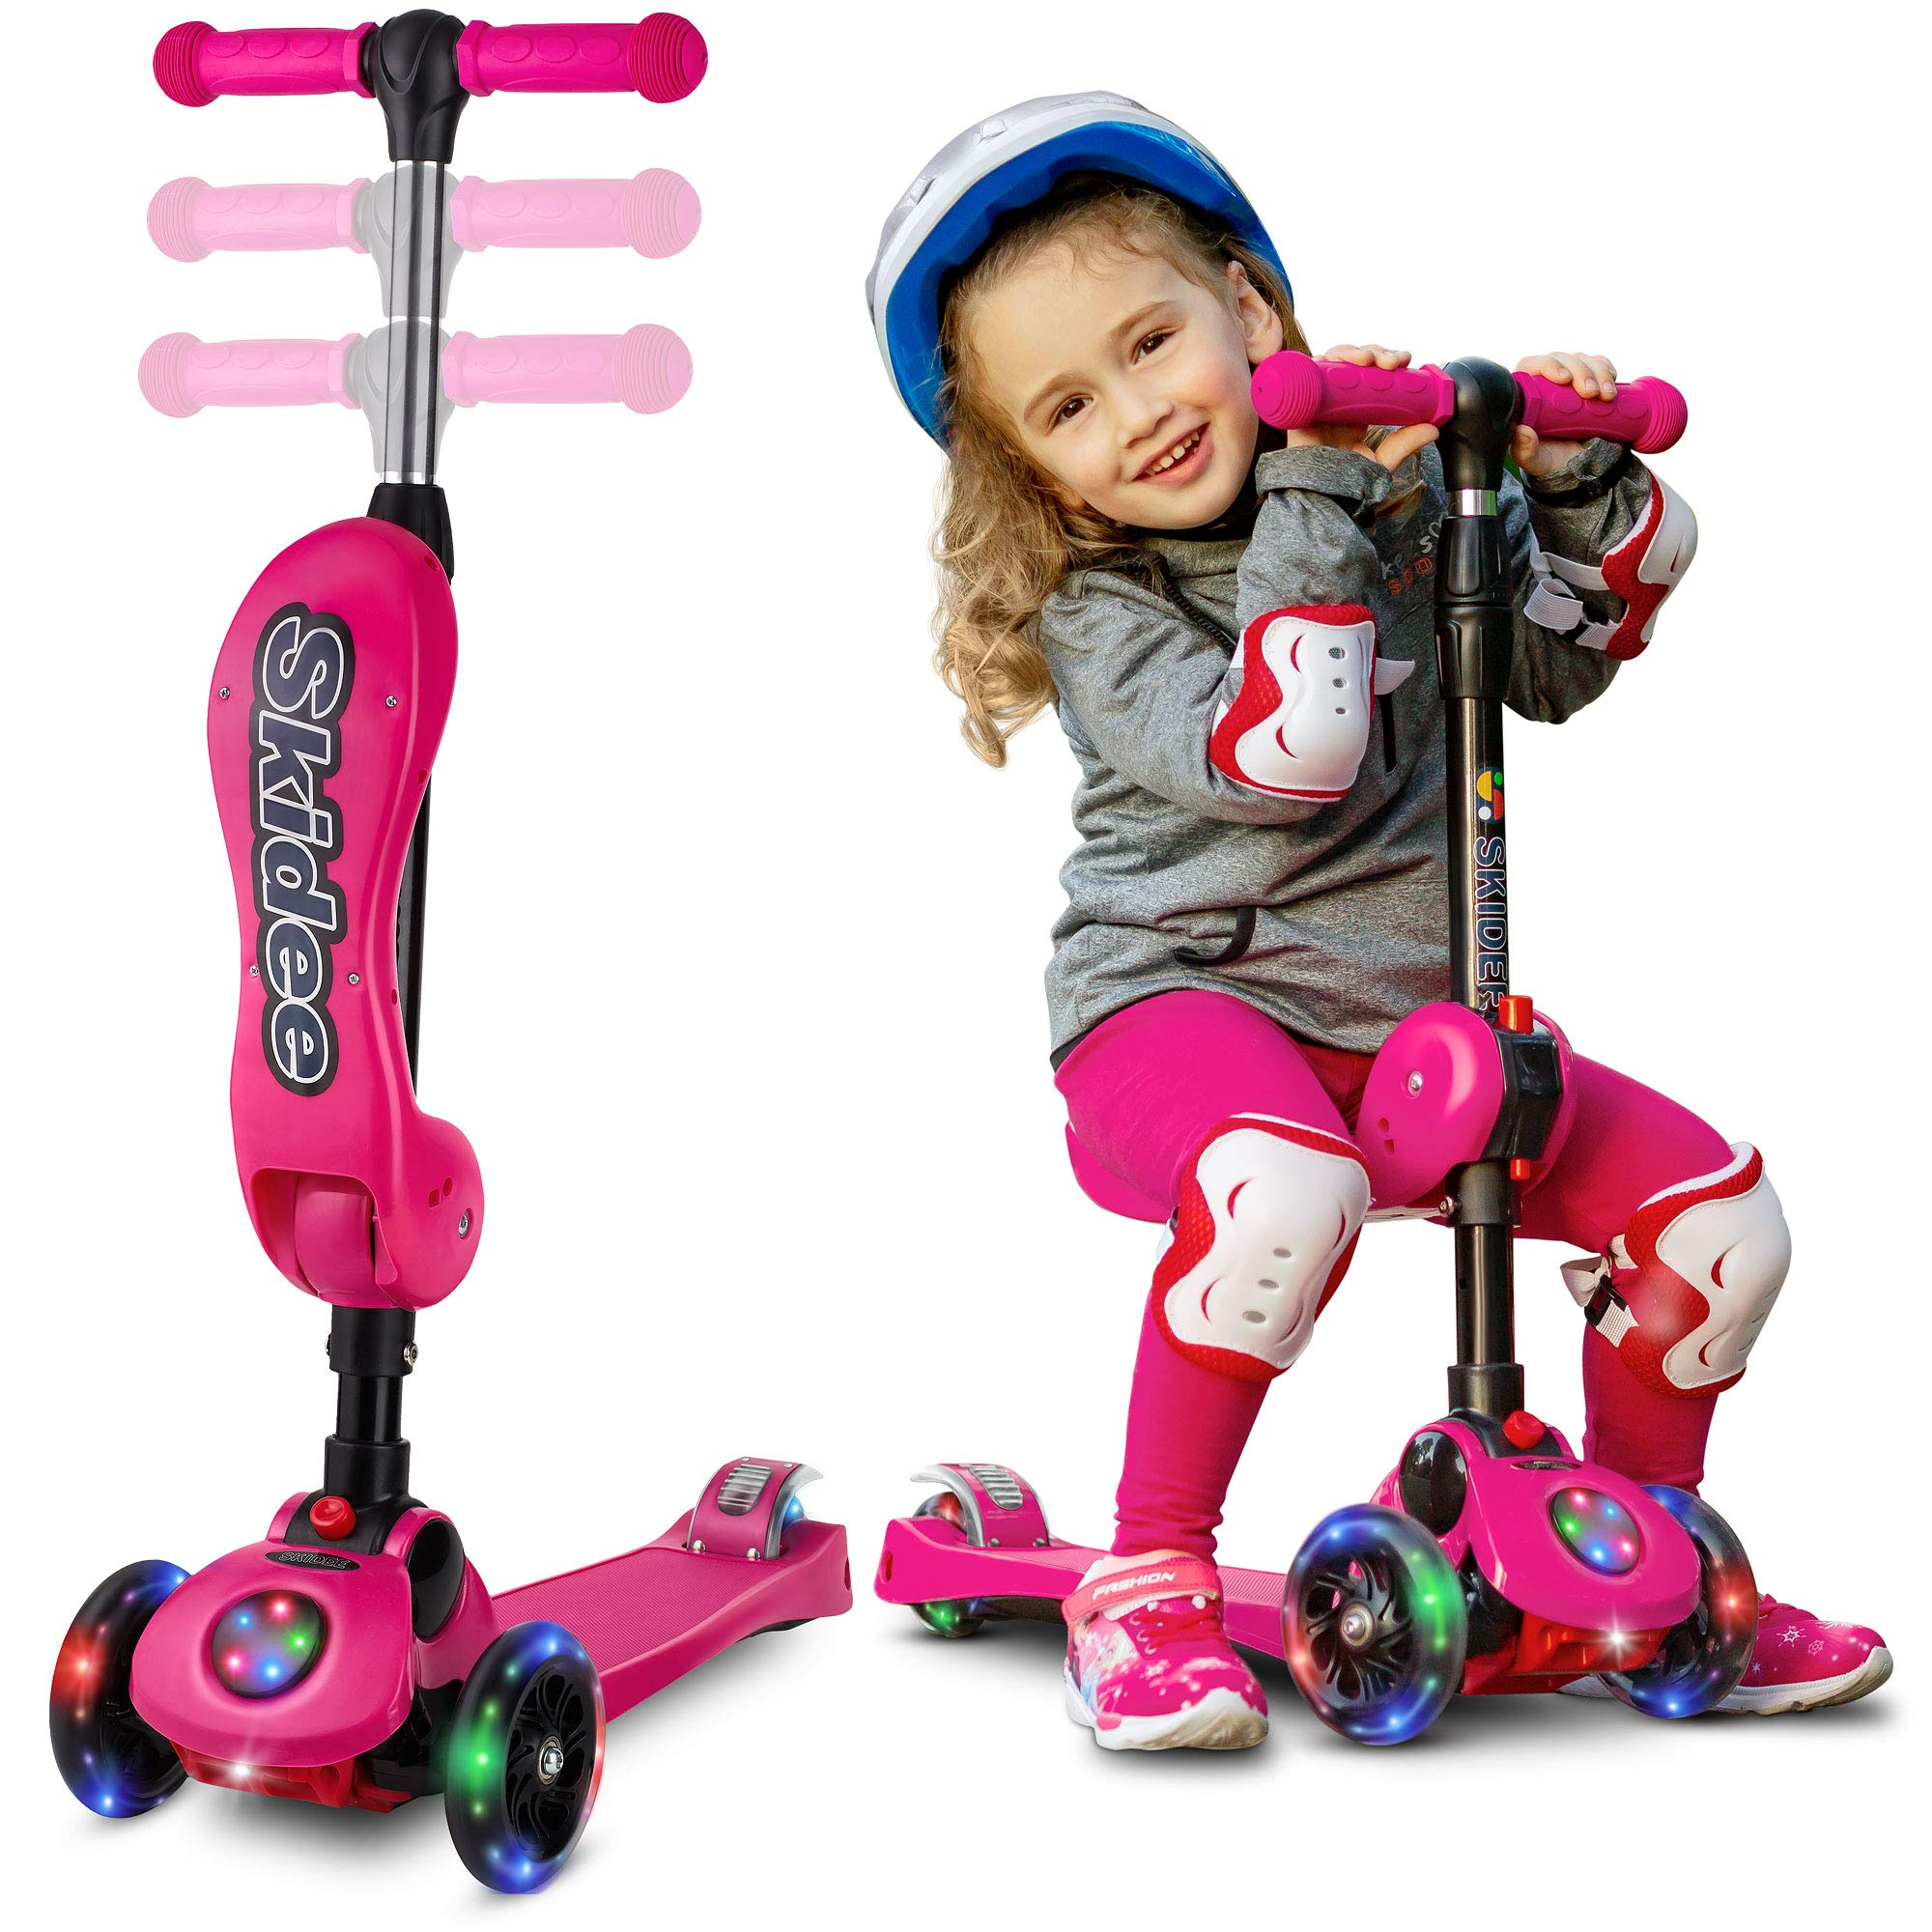 Scooter For Kids with Folding Seat - 2019 NEW 2-in-1 Adjustable 3 Wheel Kick Scooter for Toddlers Girls & Boys - Fun Outdoor Toys for Kids Fitness, Outside Games, Kid Activities - Boy & Girl Toys